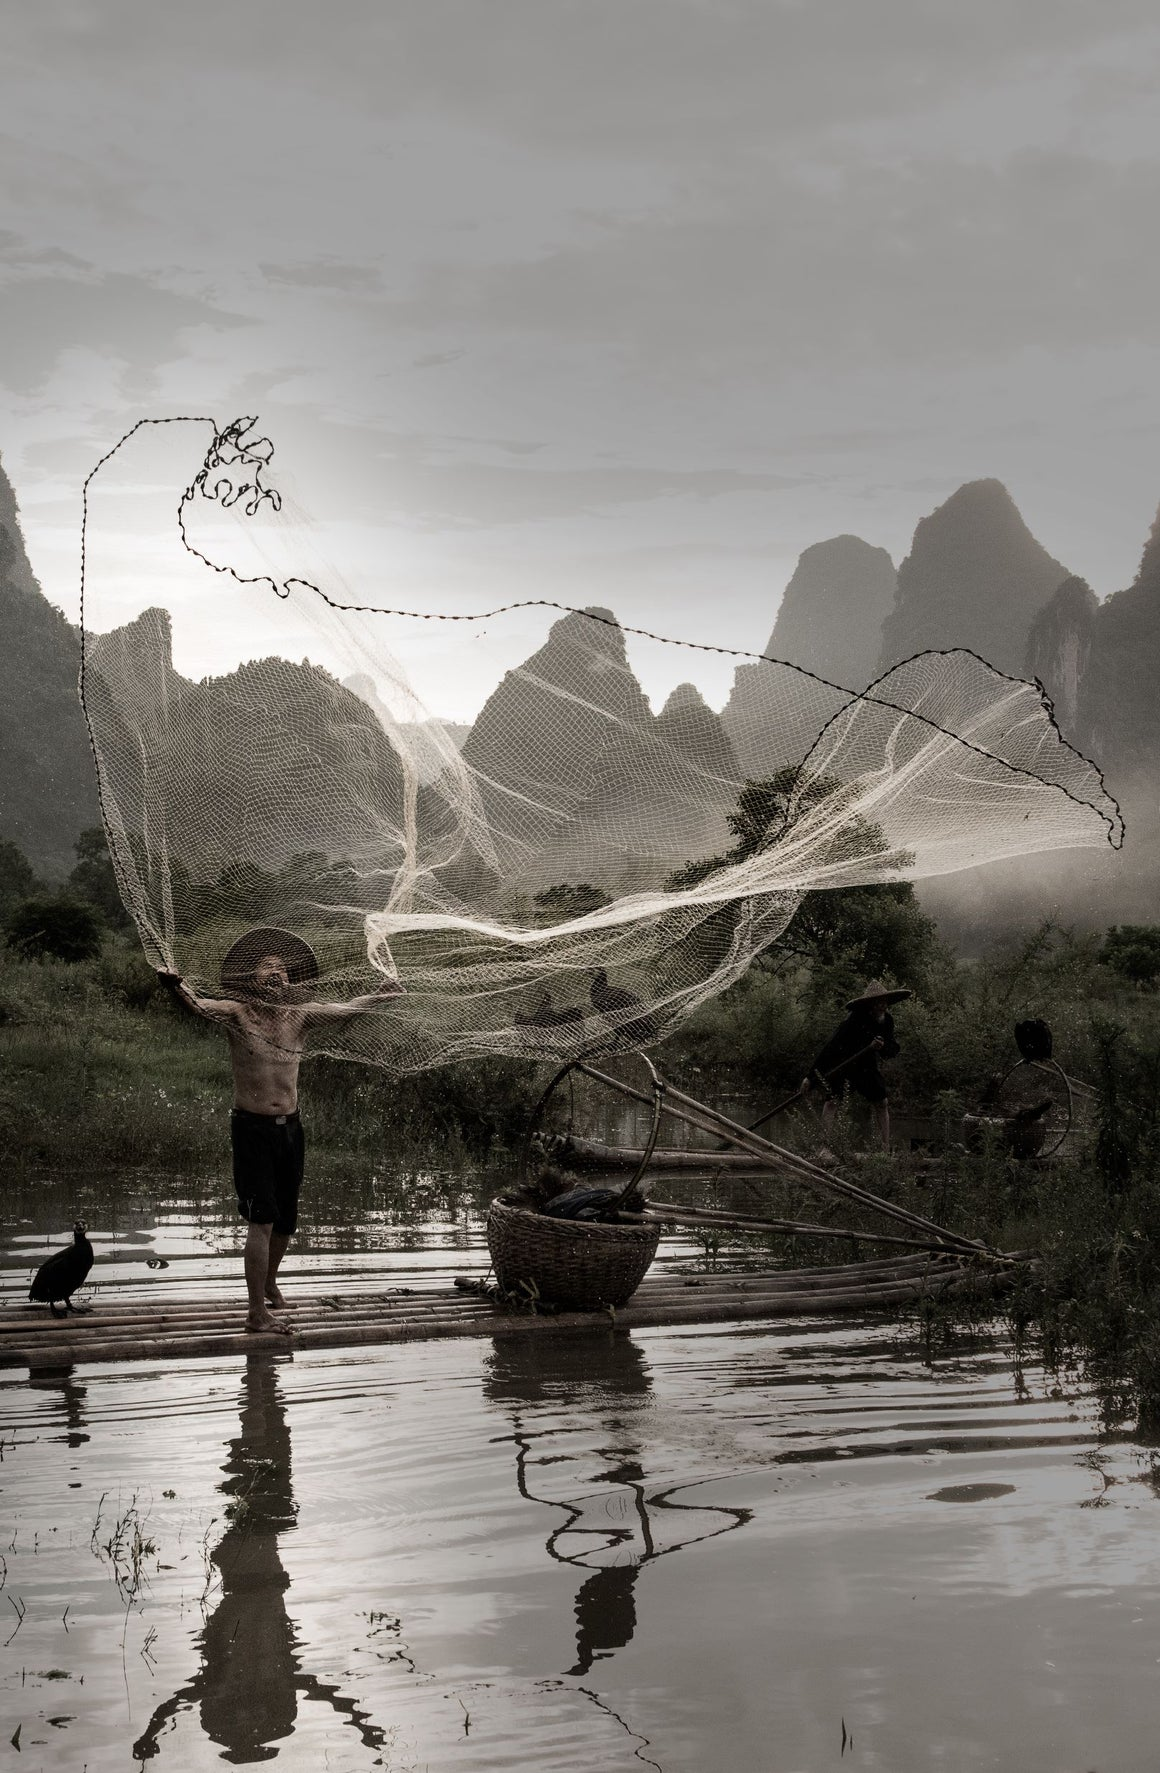 Cormorant fisherman throwing a giant fishing net into the water